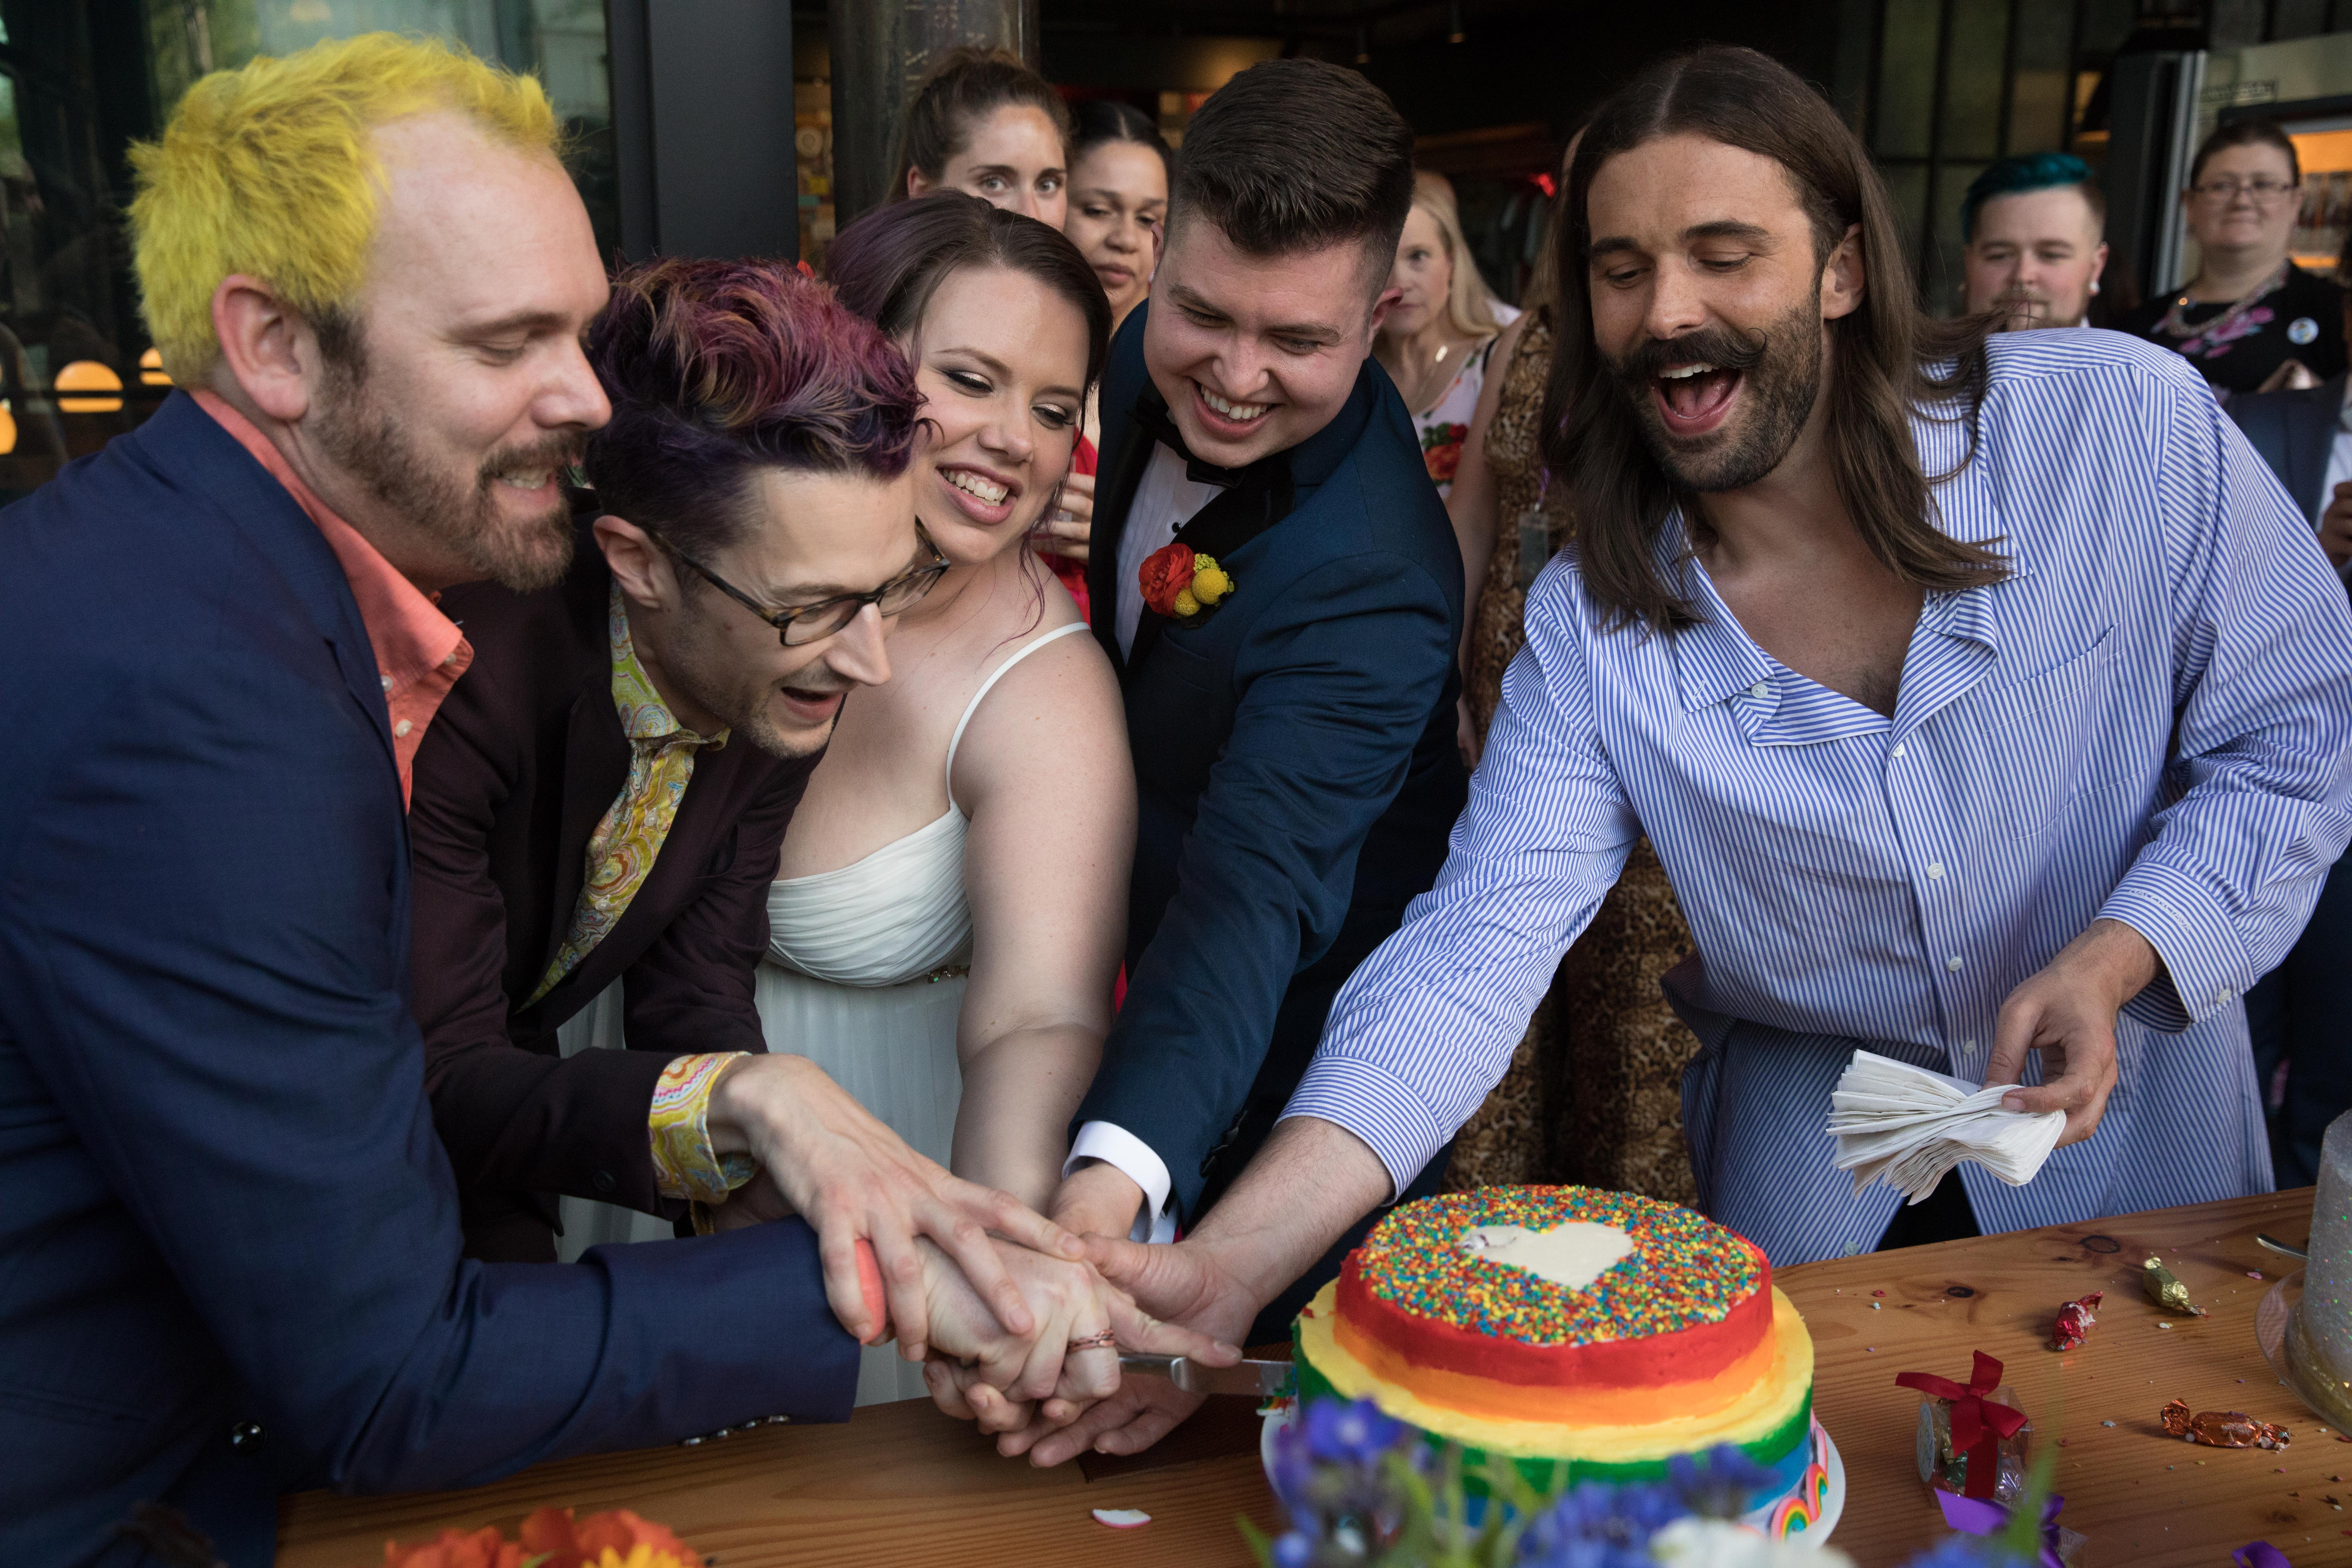 CAN YOU EVEN BELIEVE?!{ } #MarryUsJVN contest winners, Megan (middle) and Haden (middle-right), cut wedding cakes from various LGBTQ+ friendly bakeries, after being officiated by LGBTQ+ advocate Jonathan Van Ness (right) at Elysian Brewing's Capitol Hill brewpub in Seattle, Washington on June 4, 2019. (Photo by Matt Mills McKnight/Invision for Elysian Brewing/AP Images)